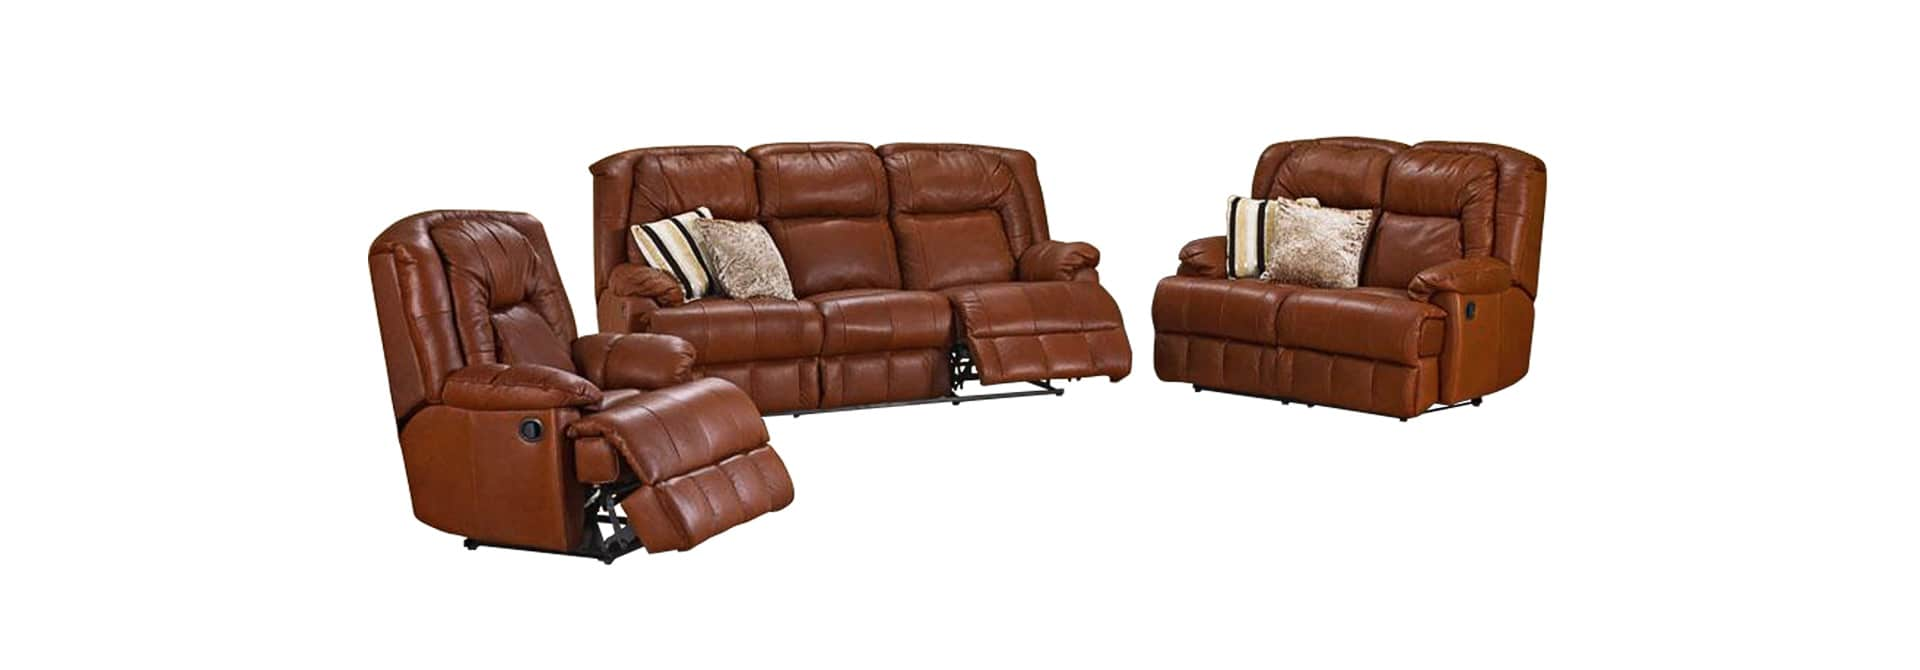 Alpine Lounge New York 3 Piece 5 Action Recliner Suite - Danie Du Toit Furnishers